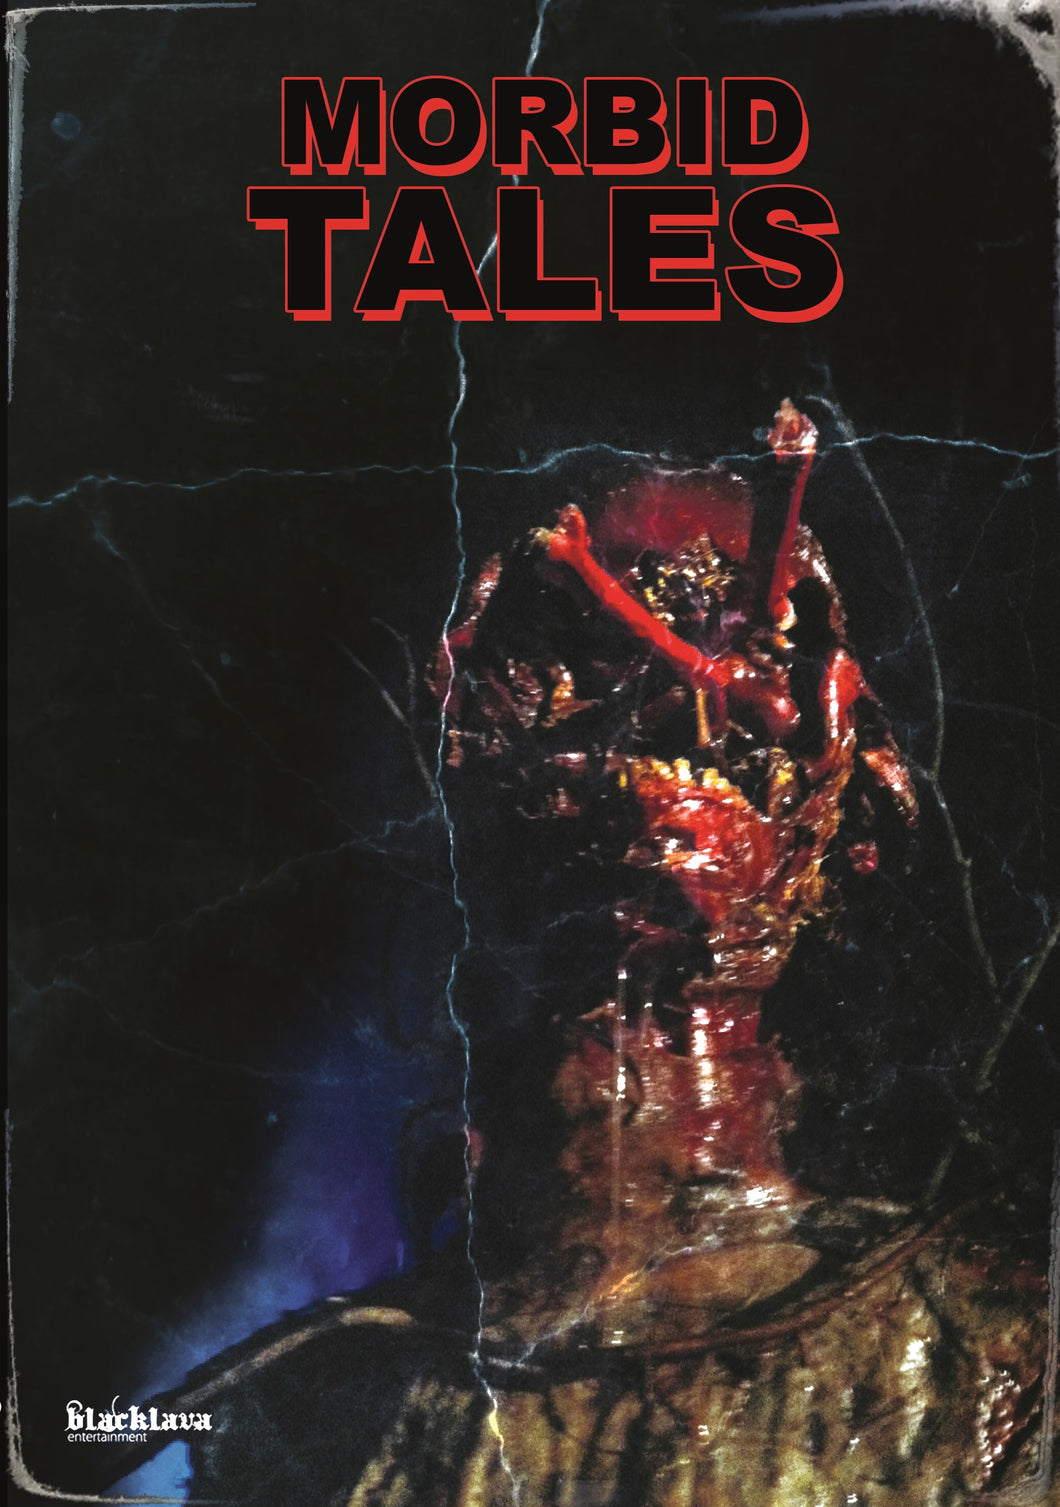 Morbid Tales by Brian Paulin - Slipcase Edition